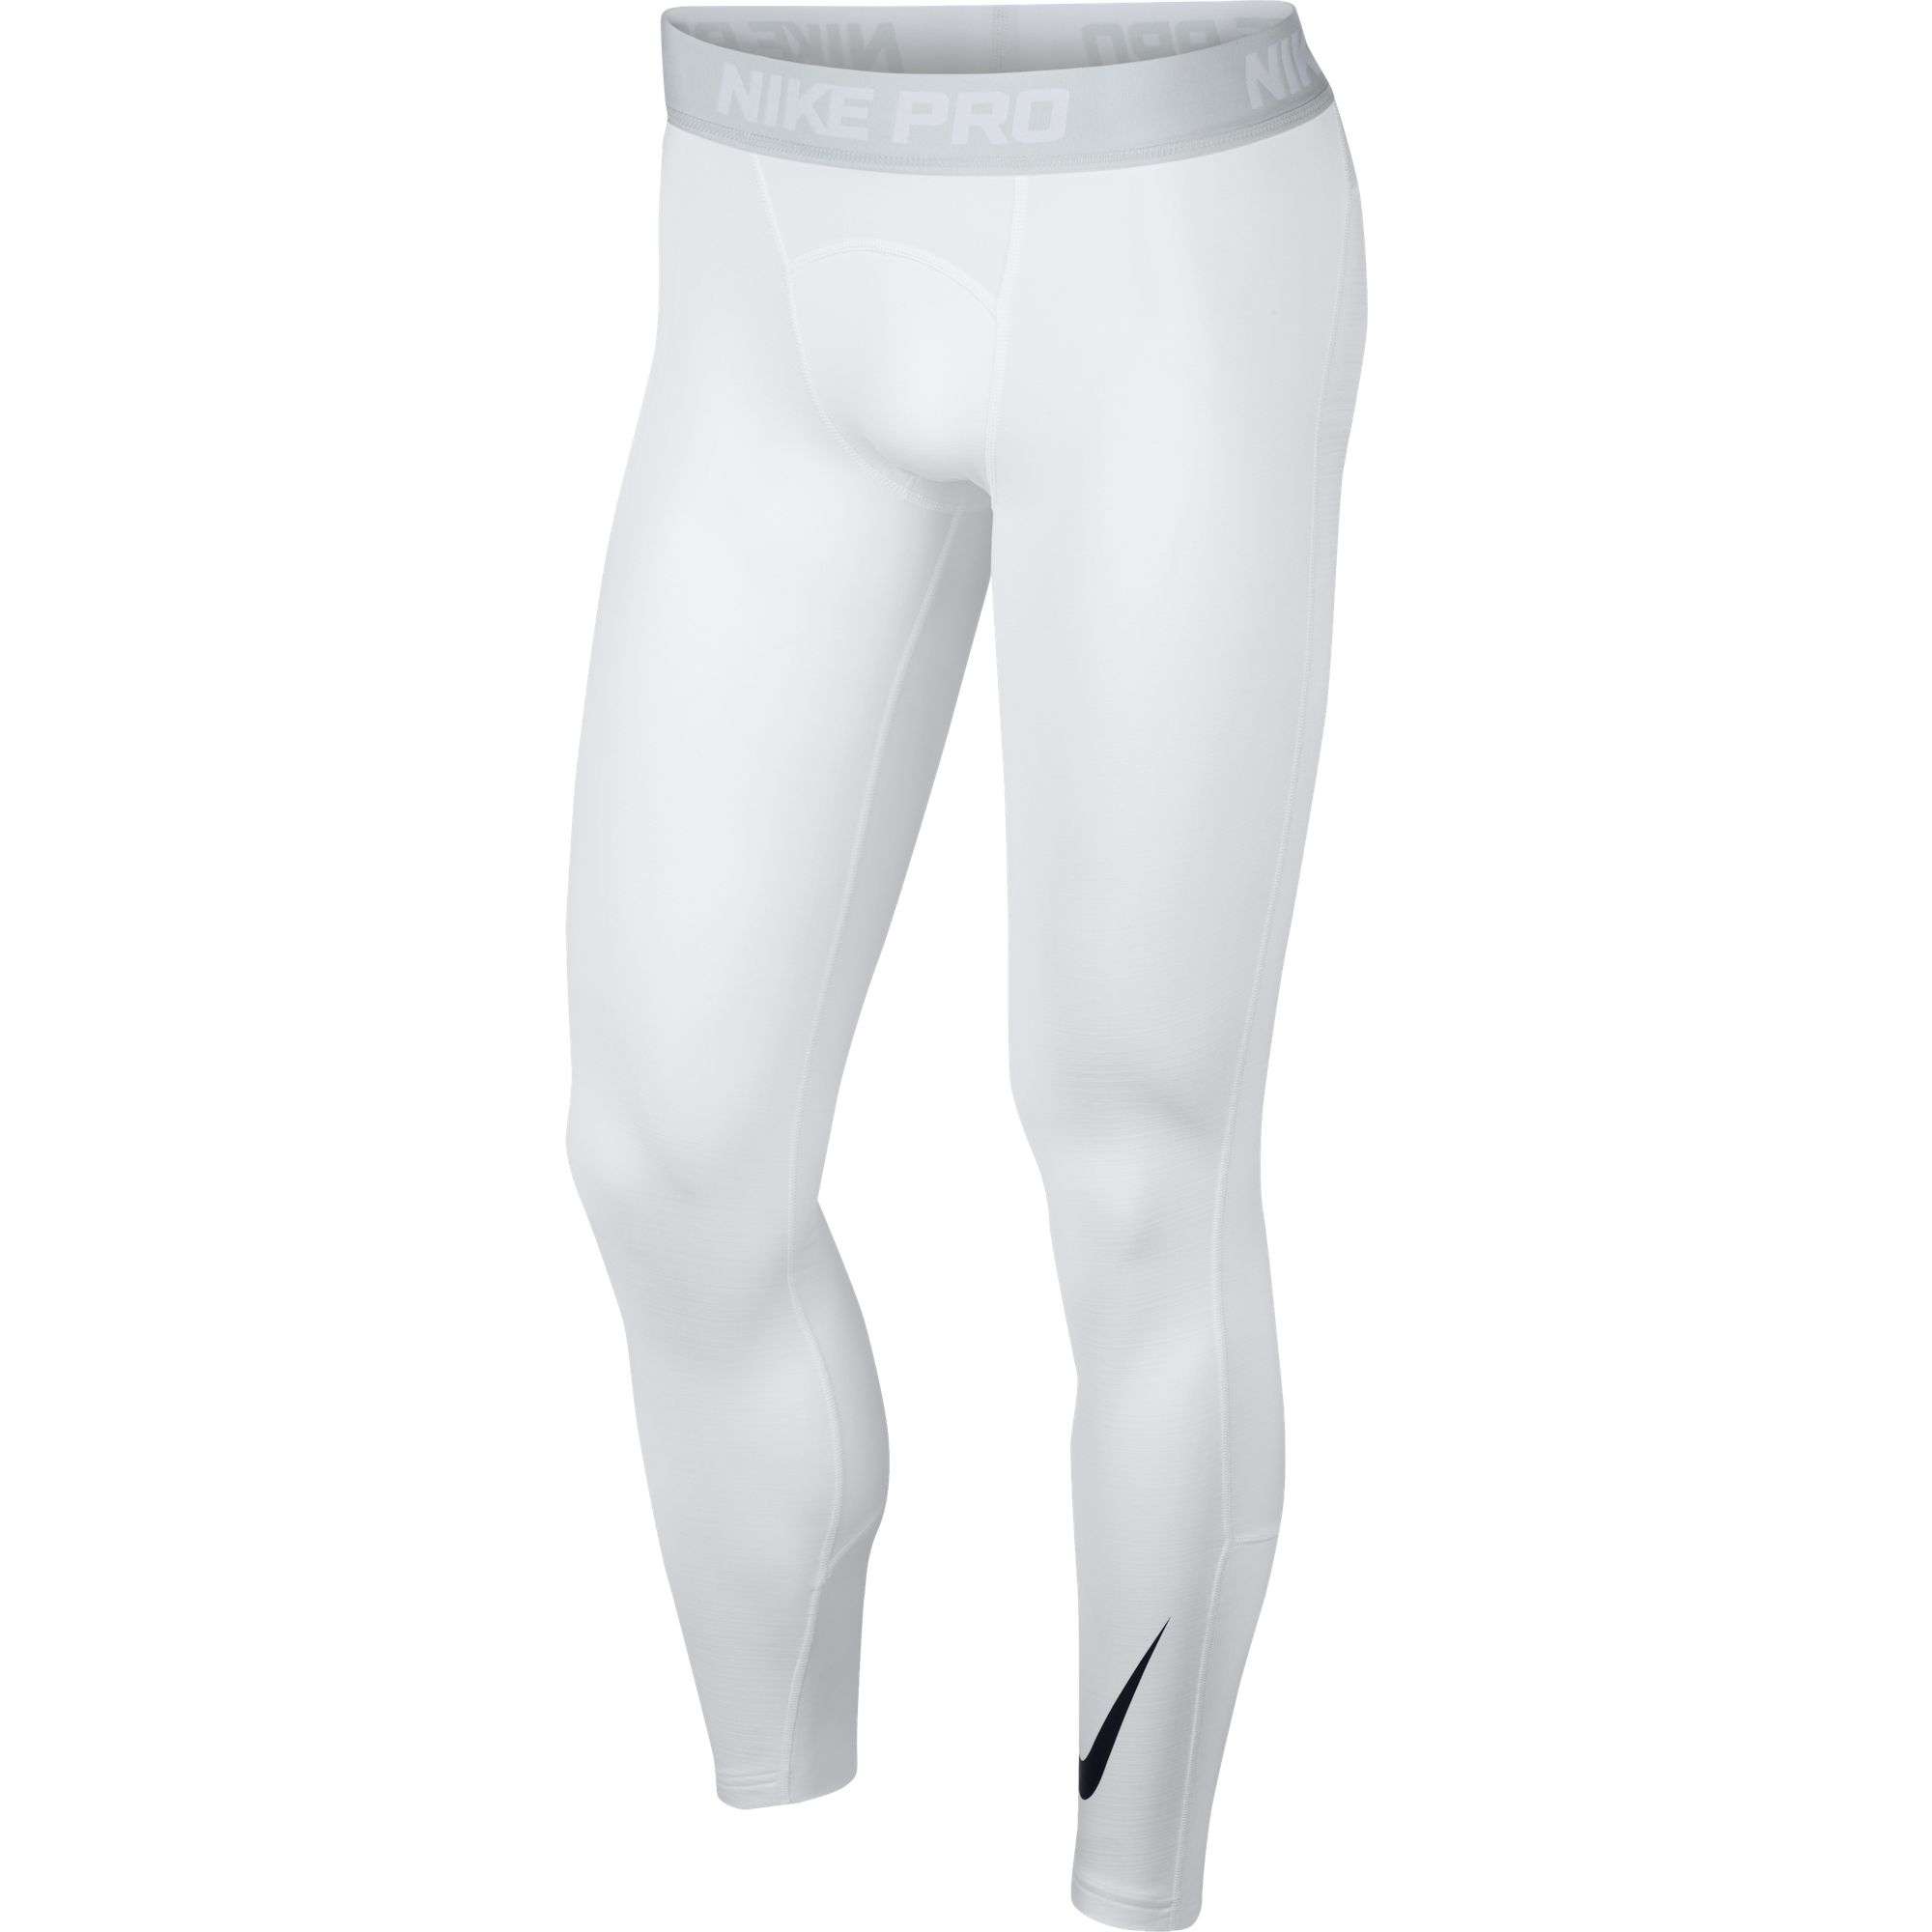 Men's Pro Dri-FIT Therma Tight, White, swatch